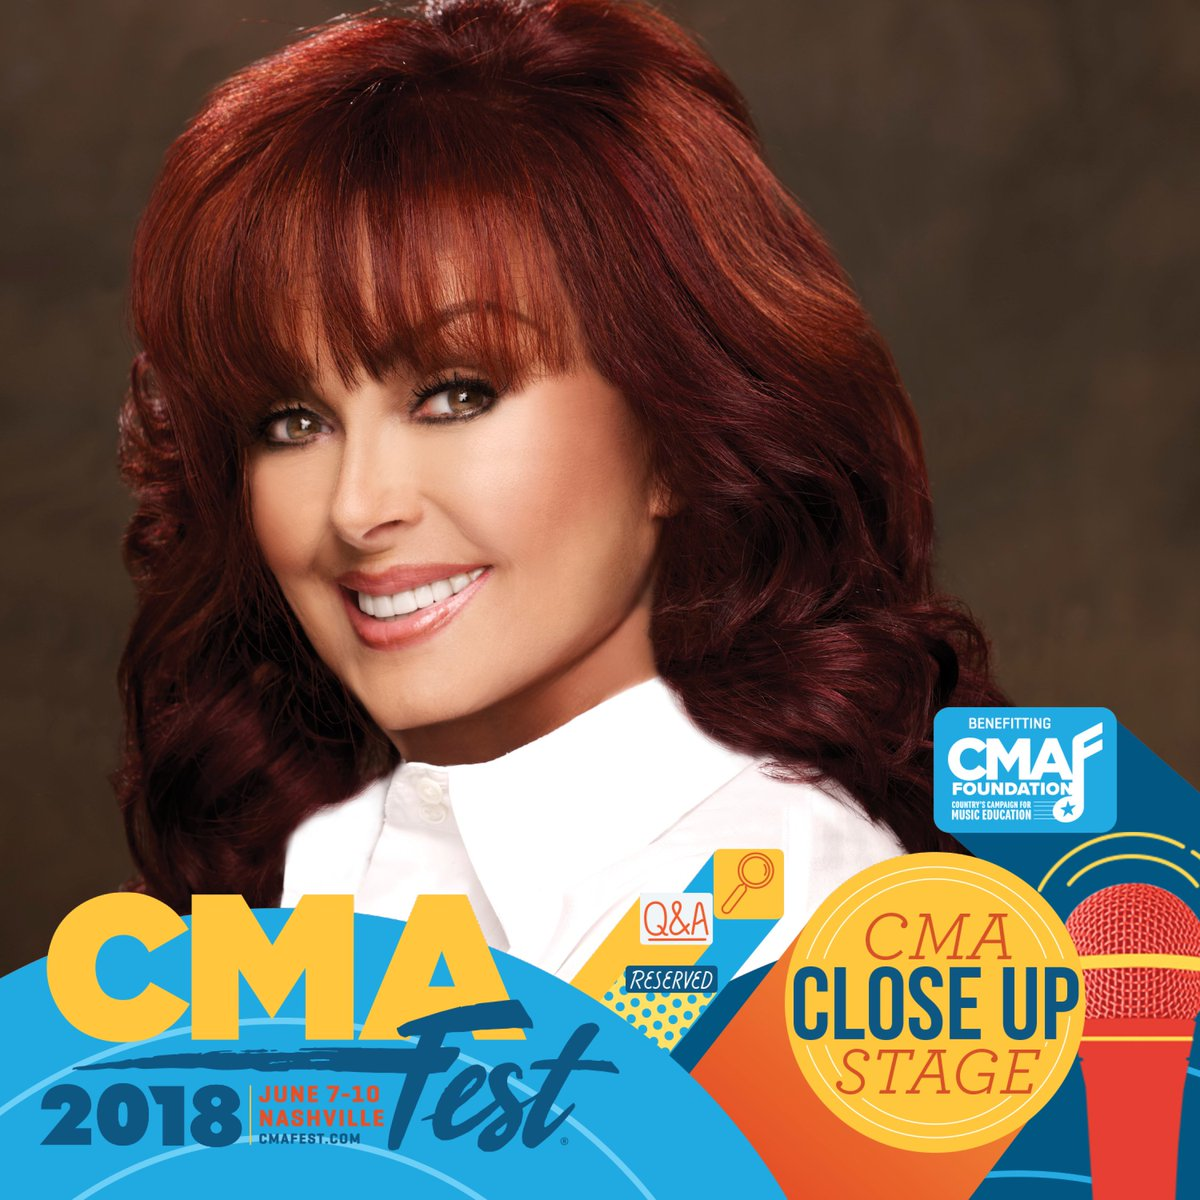 YOU HEARD IT HERE FIRST! I'm appearing at @CountryMusic's #CMAfest in Music City Center in support of the #CMAFoundation & music education! Buy tix here:  #itstartswithME